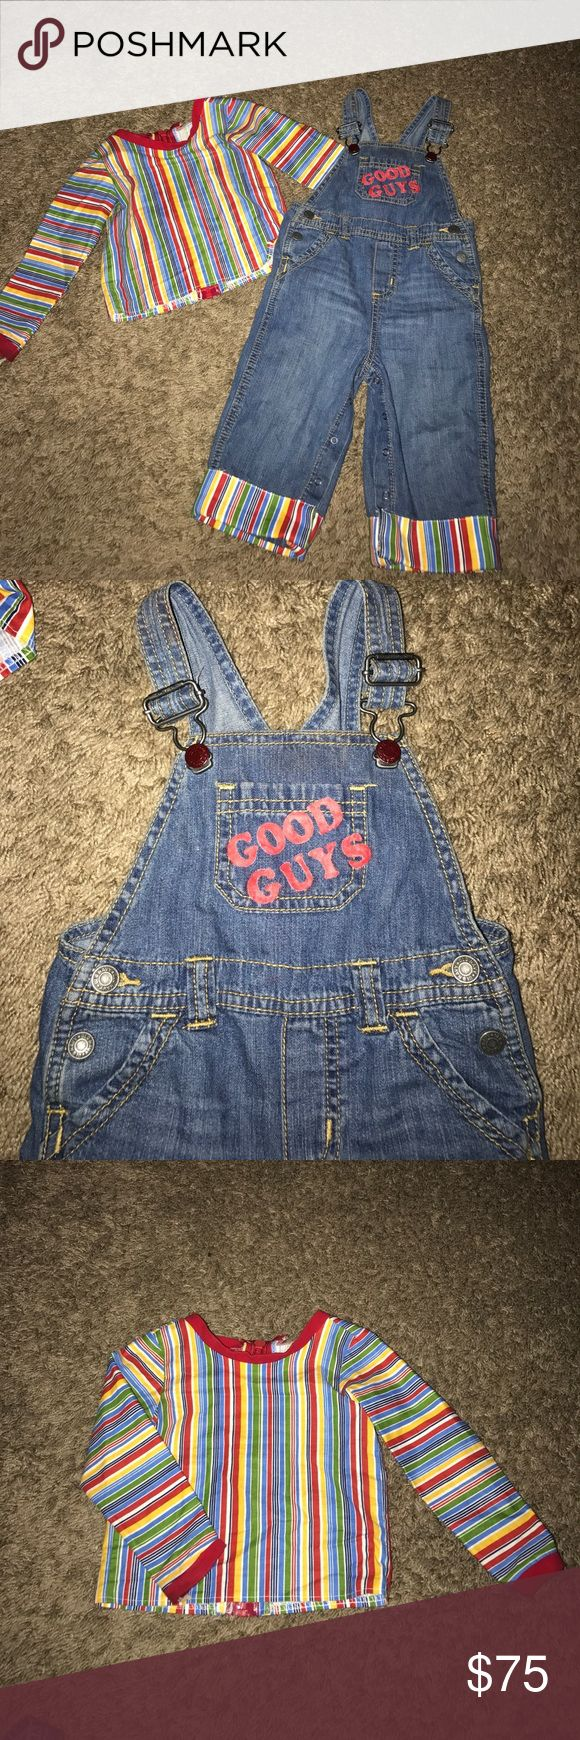 Chucky costume Size 12/18 months Chucky costume Costumes